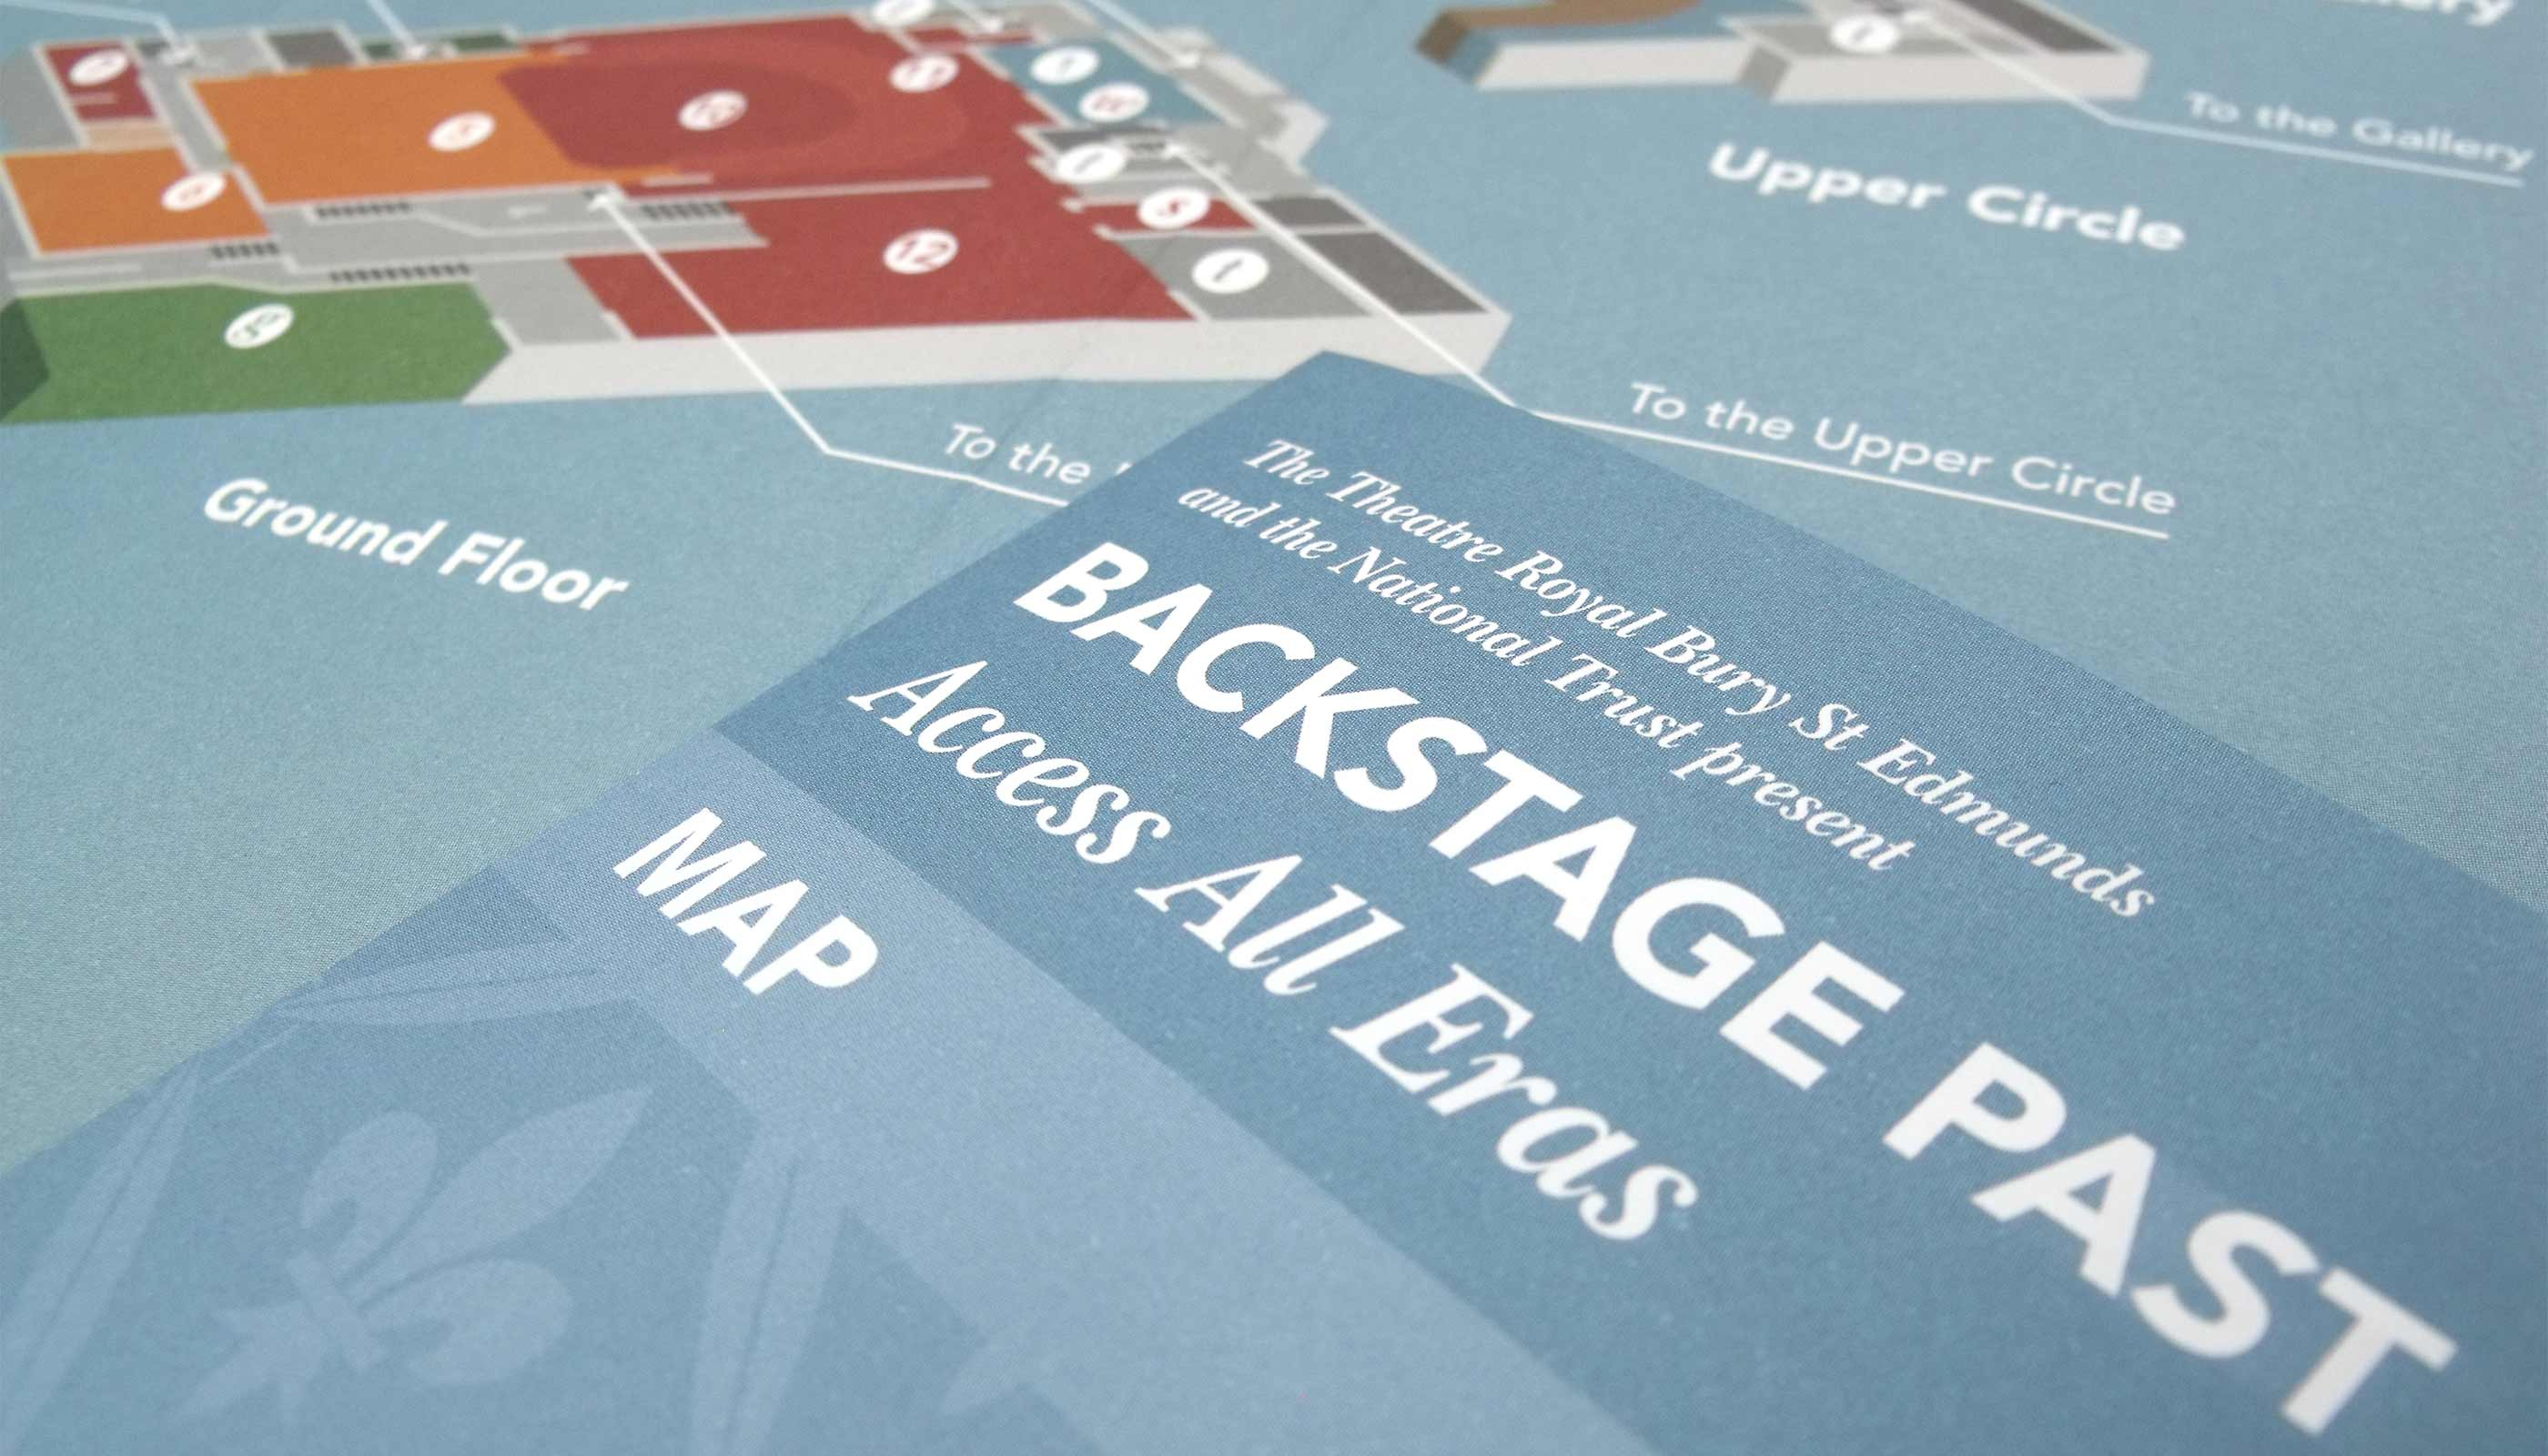 Leaflet and map design for adult tour at Theatre Royal in Bury St Edmunds, Suffolk.